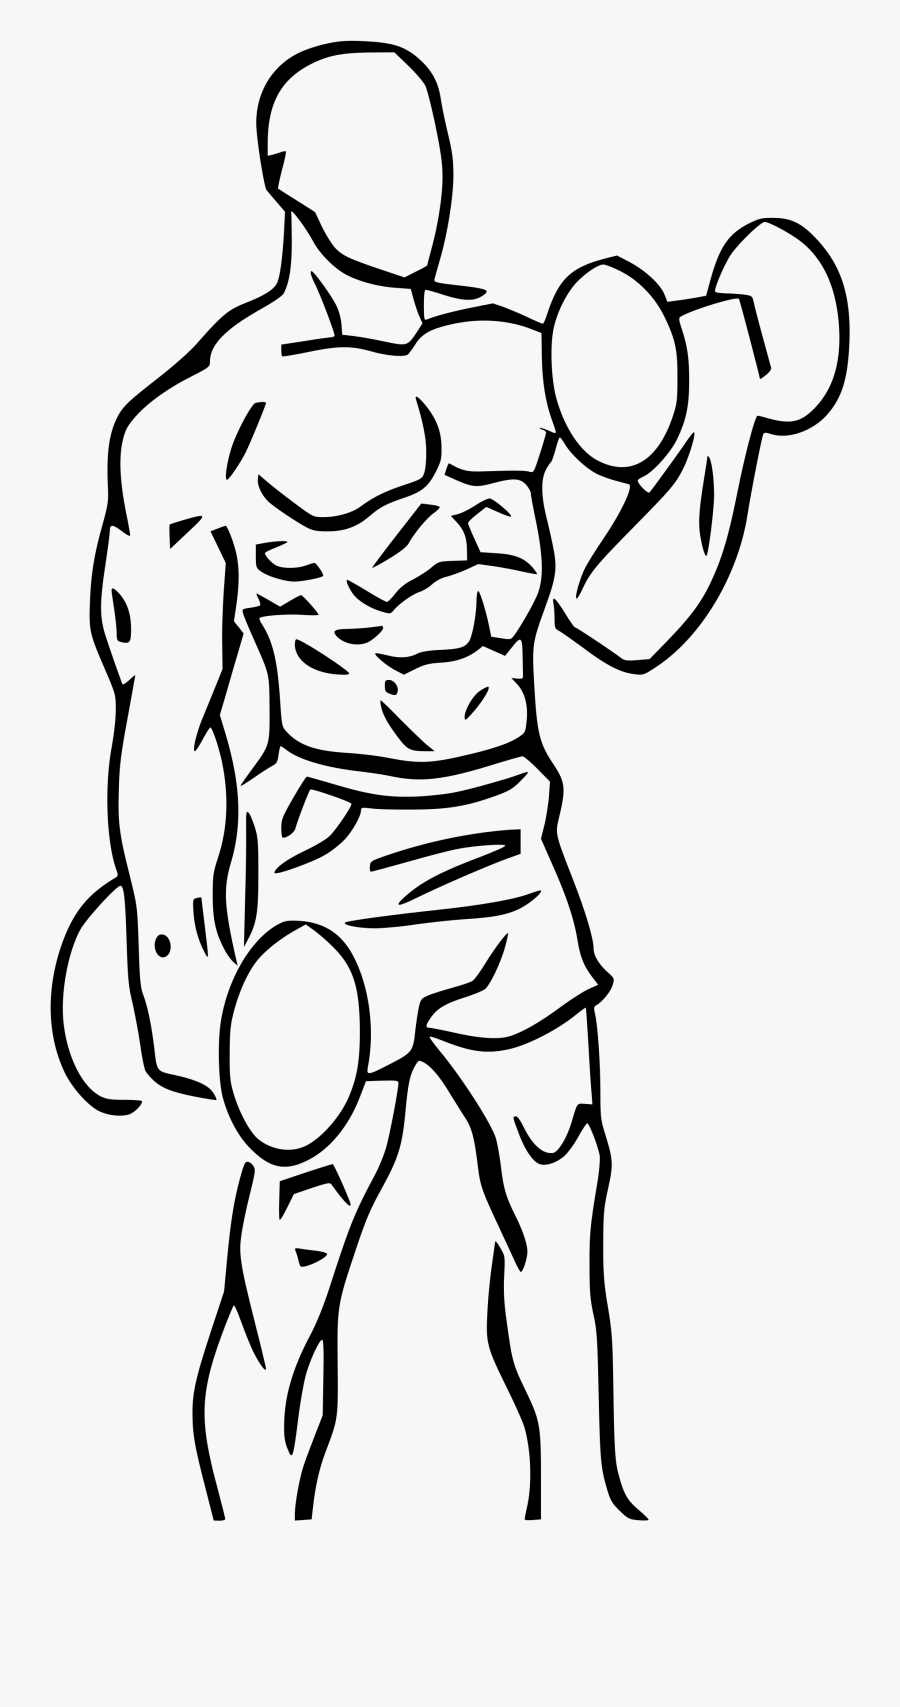 Collection Of Drawing - Bicep Curls Dumbbell Drawing, Transparent Clipart